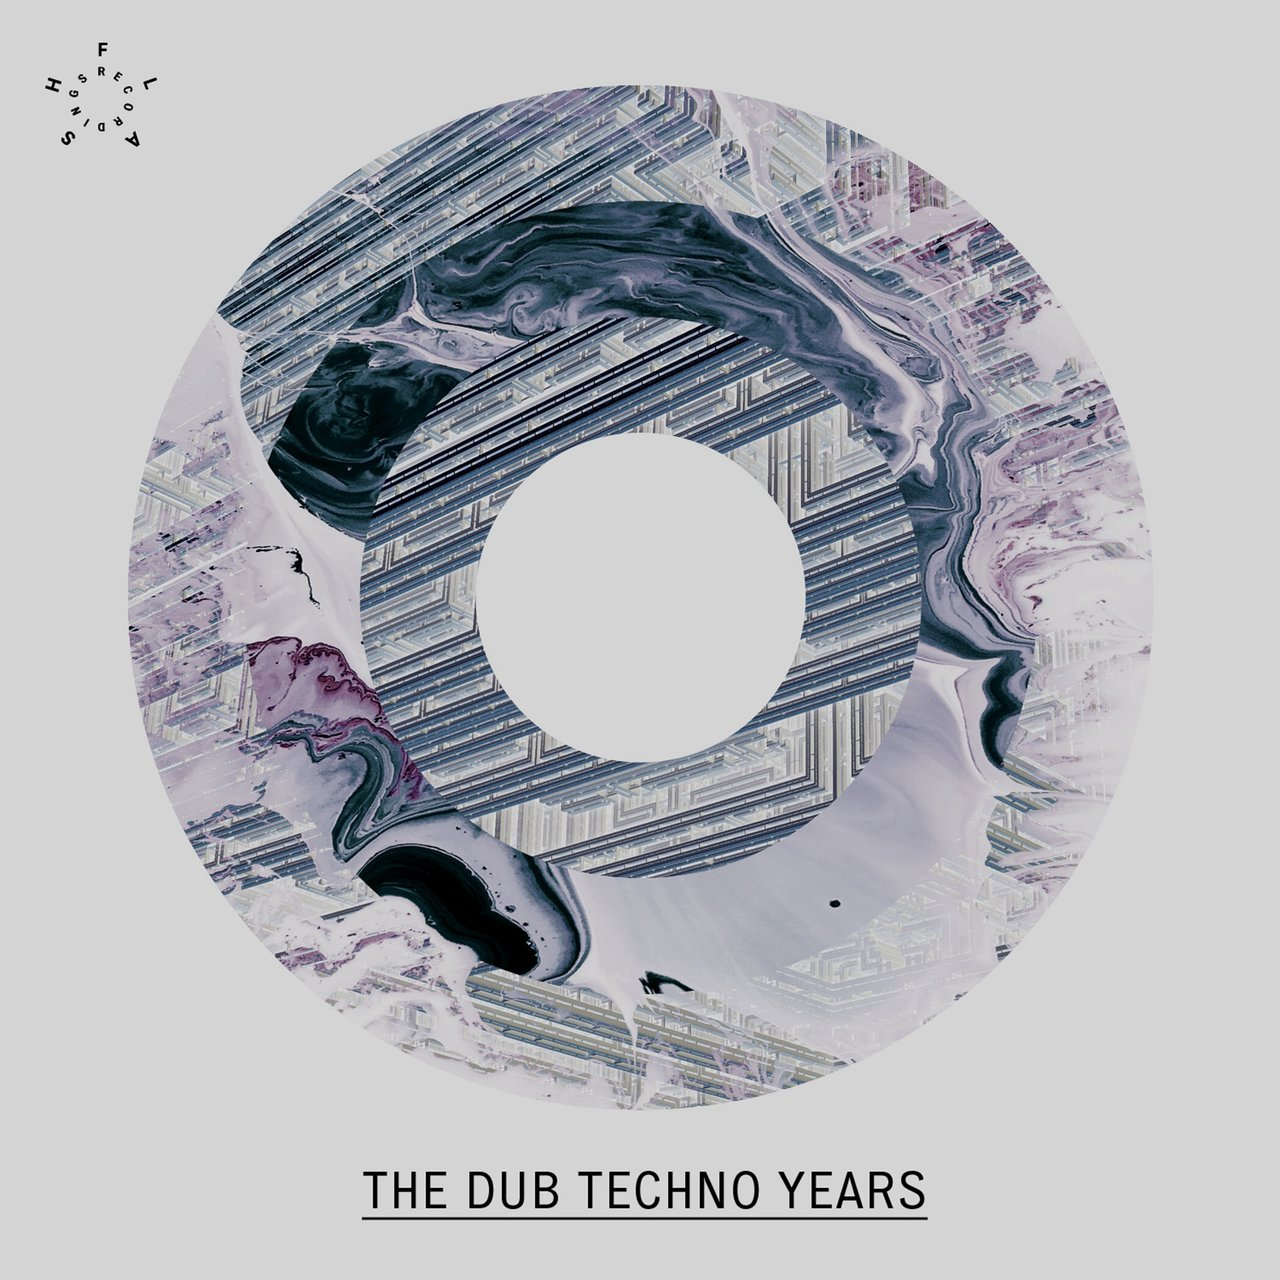 Download The Dub Techno years on Electrobuzz